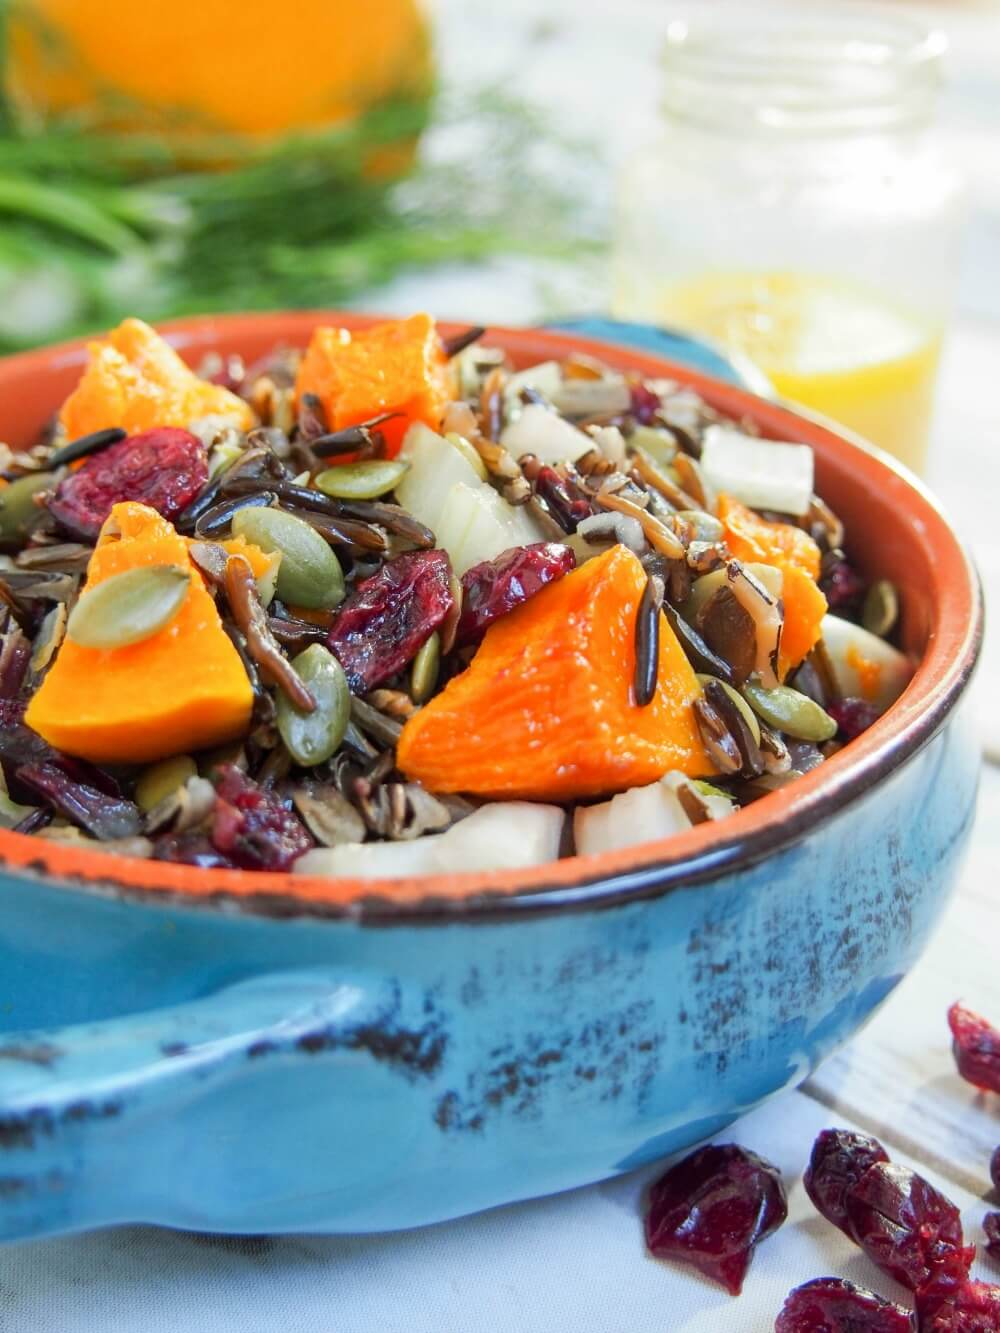 Easy to make, colorful and flavorful, this butternut squash wild rice salad would be perfect for a potluck, on a Holiday table or in your lunch box.